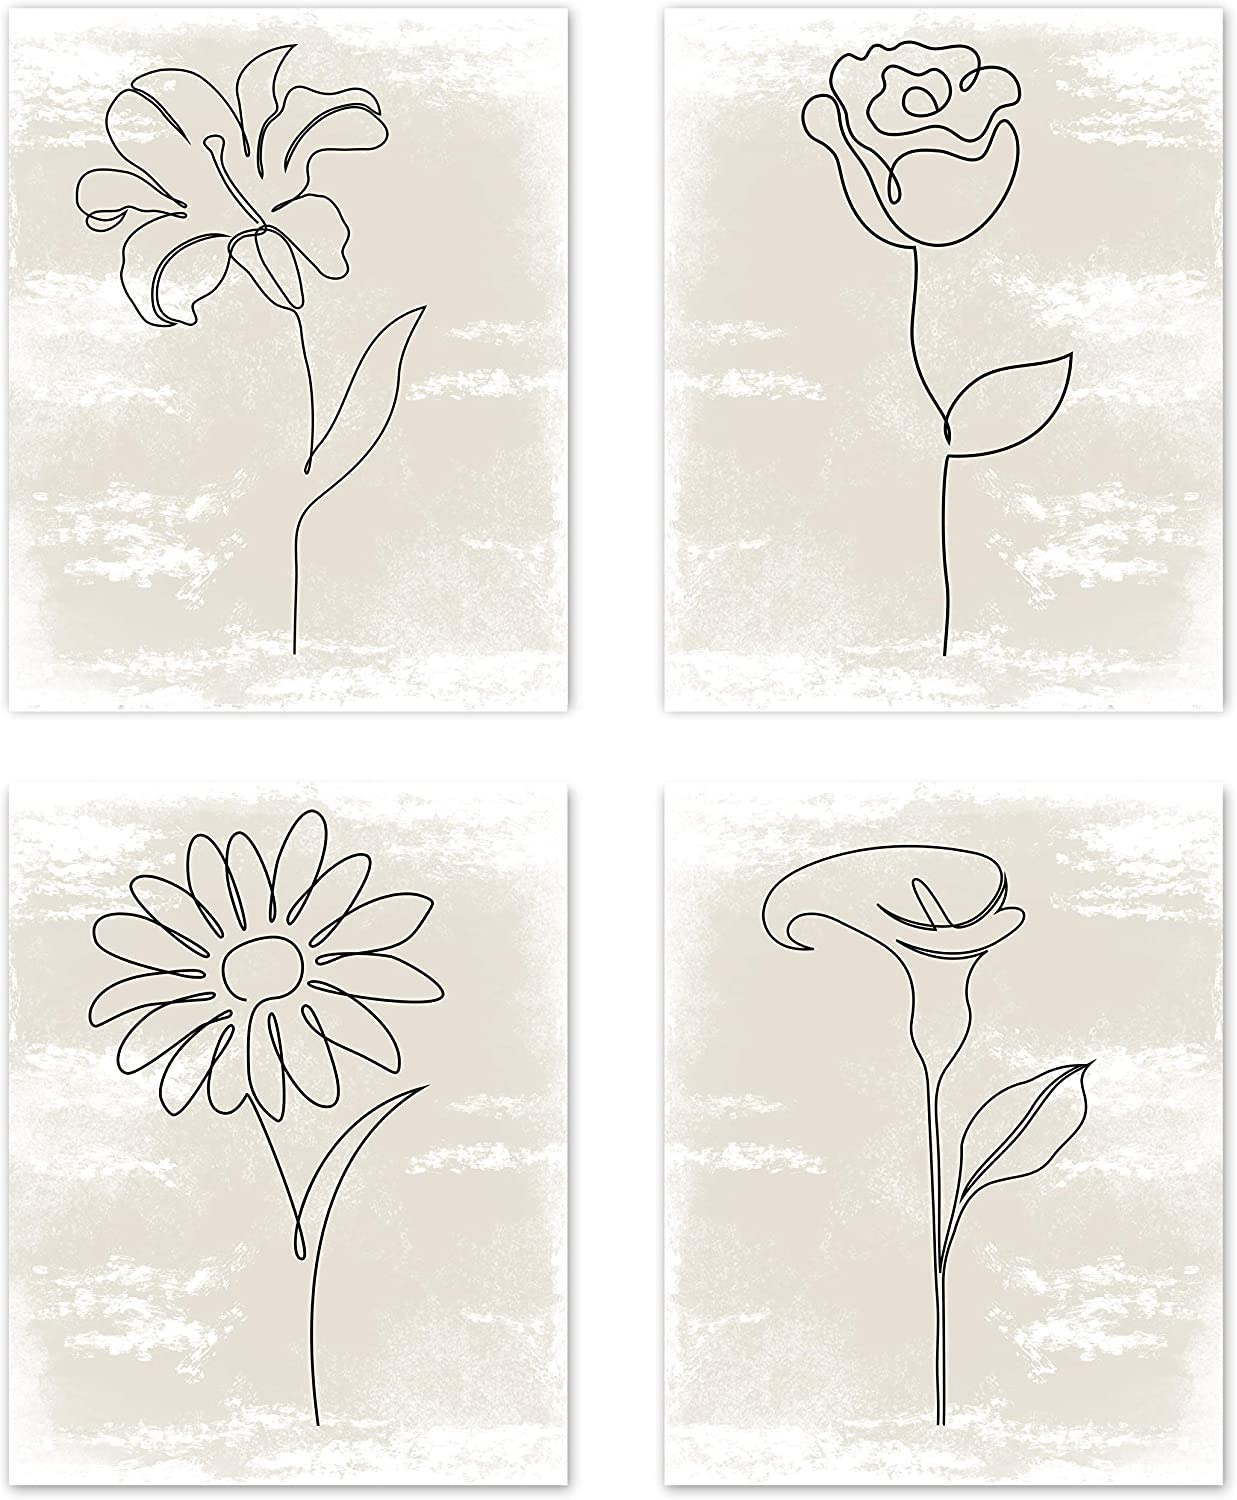 Boho Minimalist Flower Line Art Tan Neutral Watercolor Abstract Farmhouse Wall Art Posters Home Living Room Decor Simple Aesthetic Rose Daisy Wildflower Pictures Prints Decorations Kitchen Bedroom